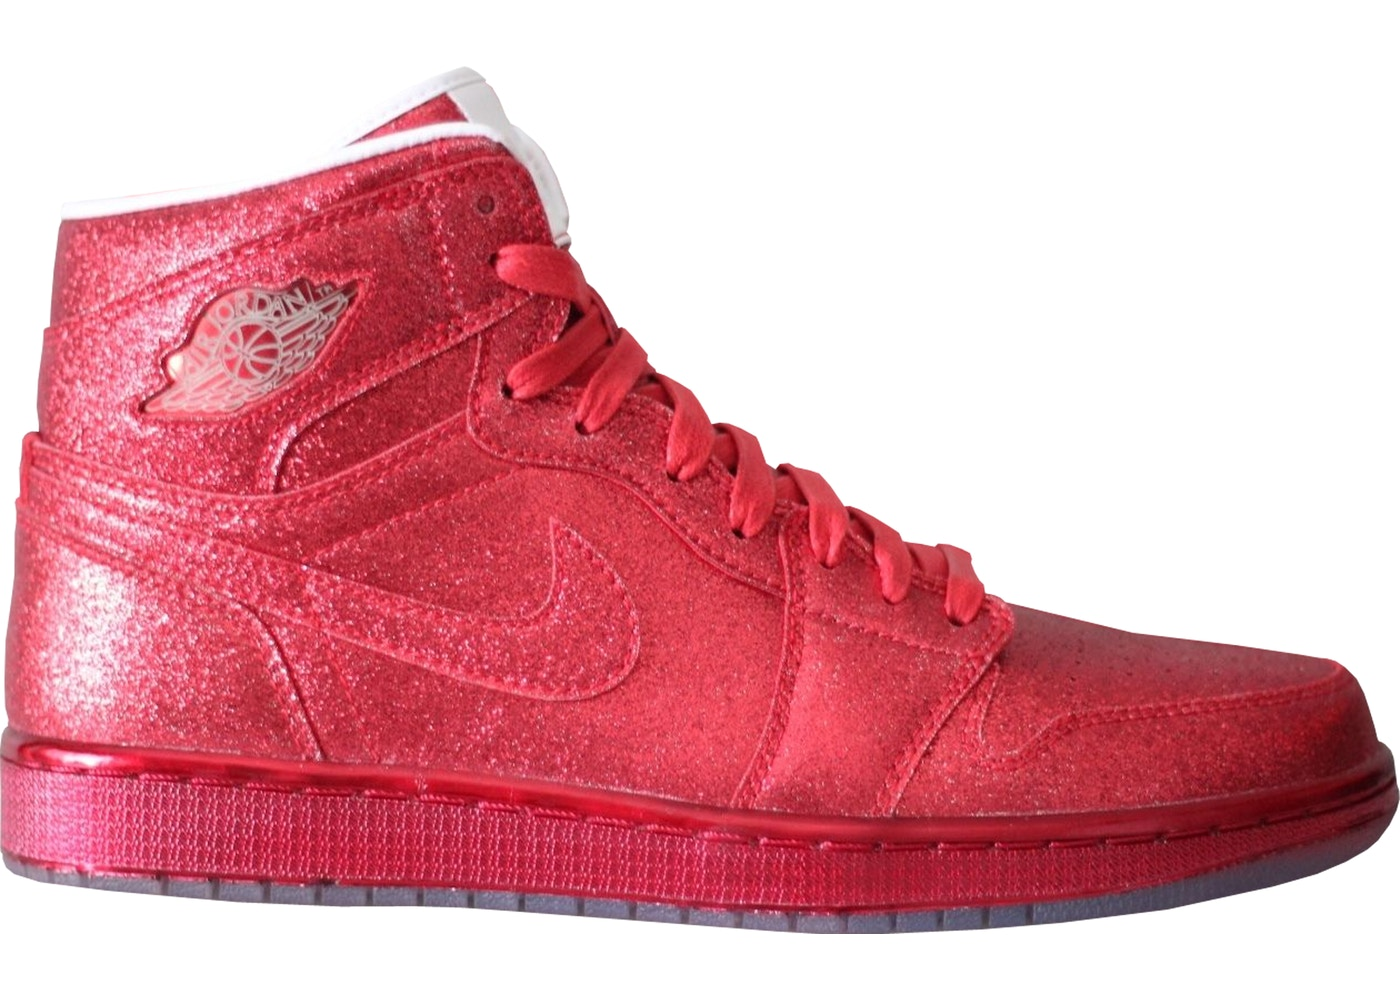 Air Jordan 1 Shoes - Average Sale Price ed8746337